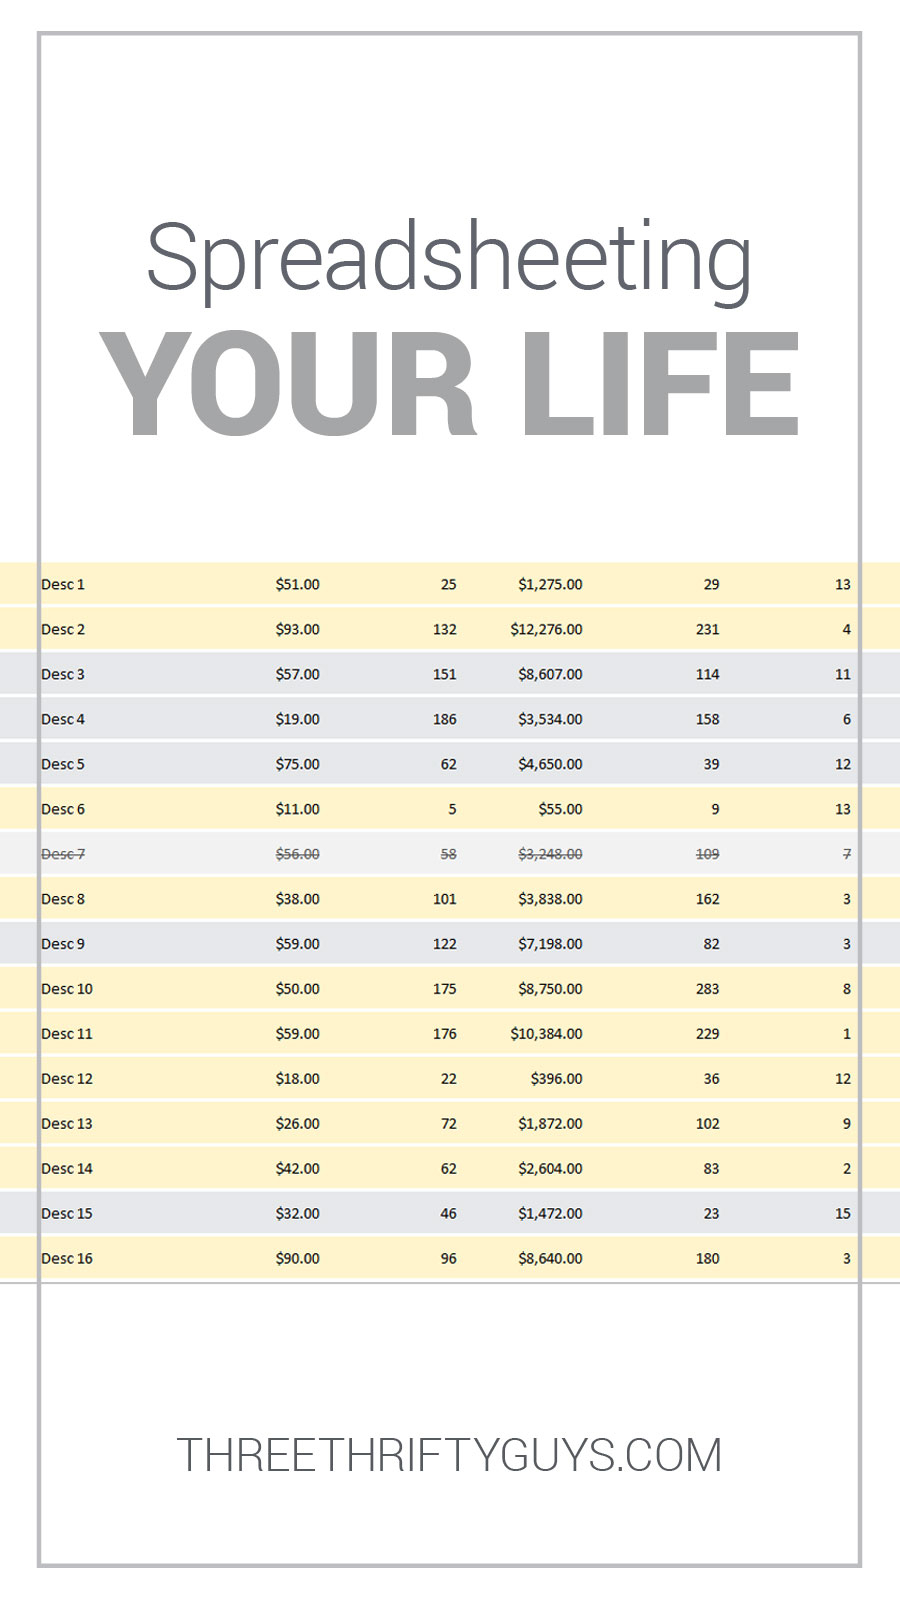 Life Spreadsheet For Spreadsheeting Your Entire Life  Debt  Three Thrifty Guys